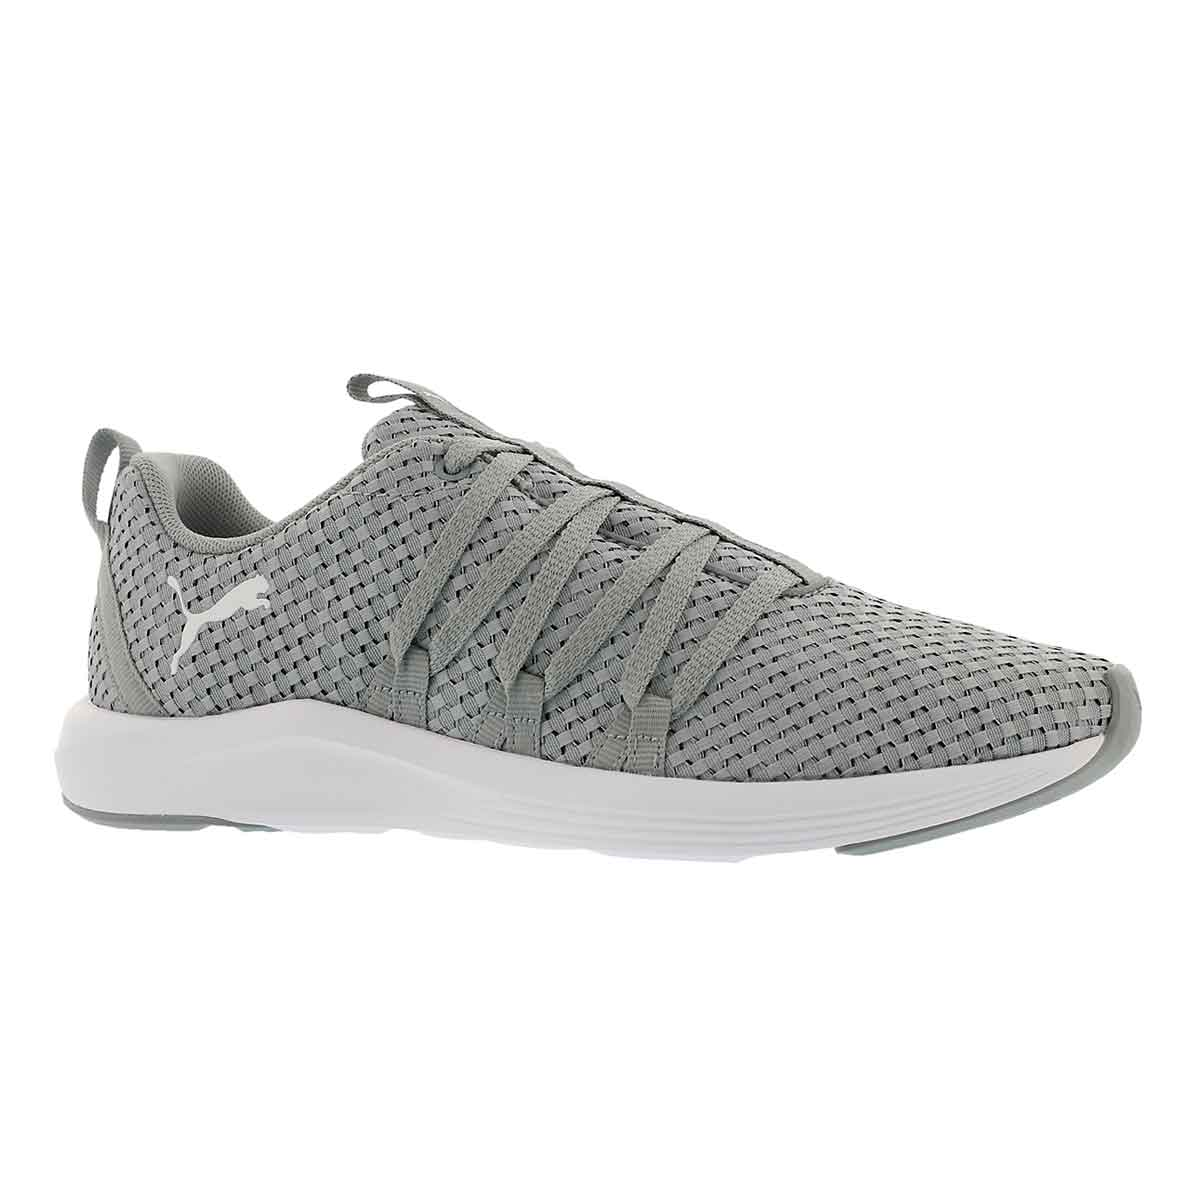 Women's PROWL ALT WEAVE grey slip on sneakers